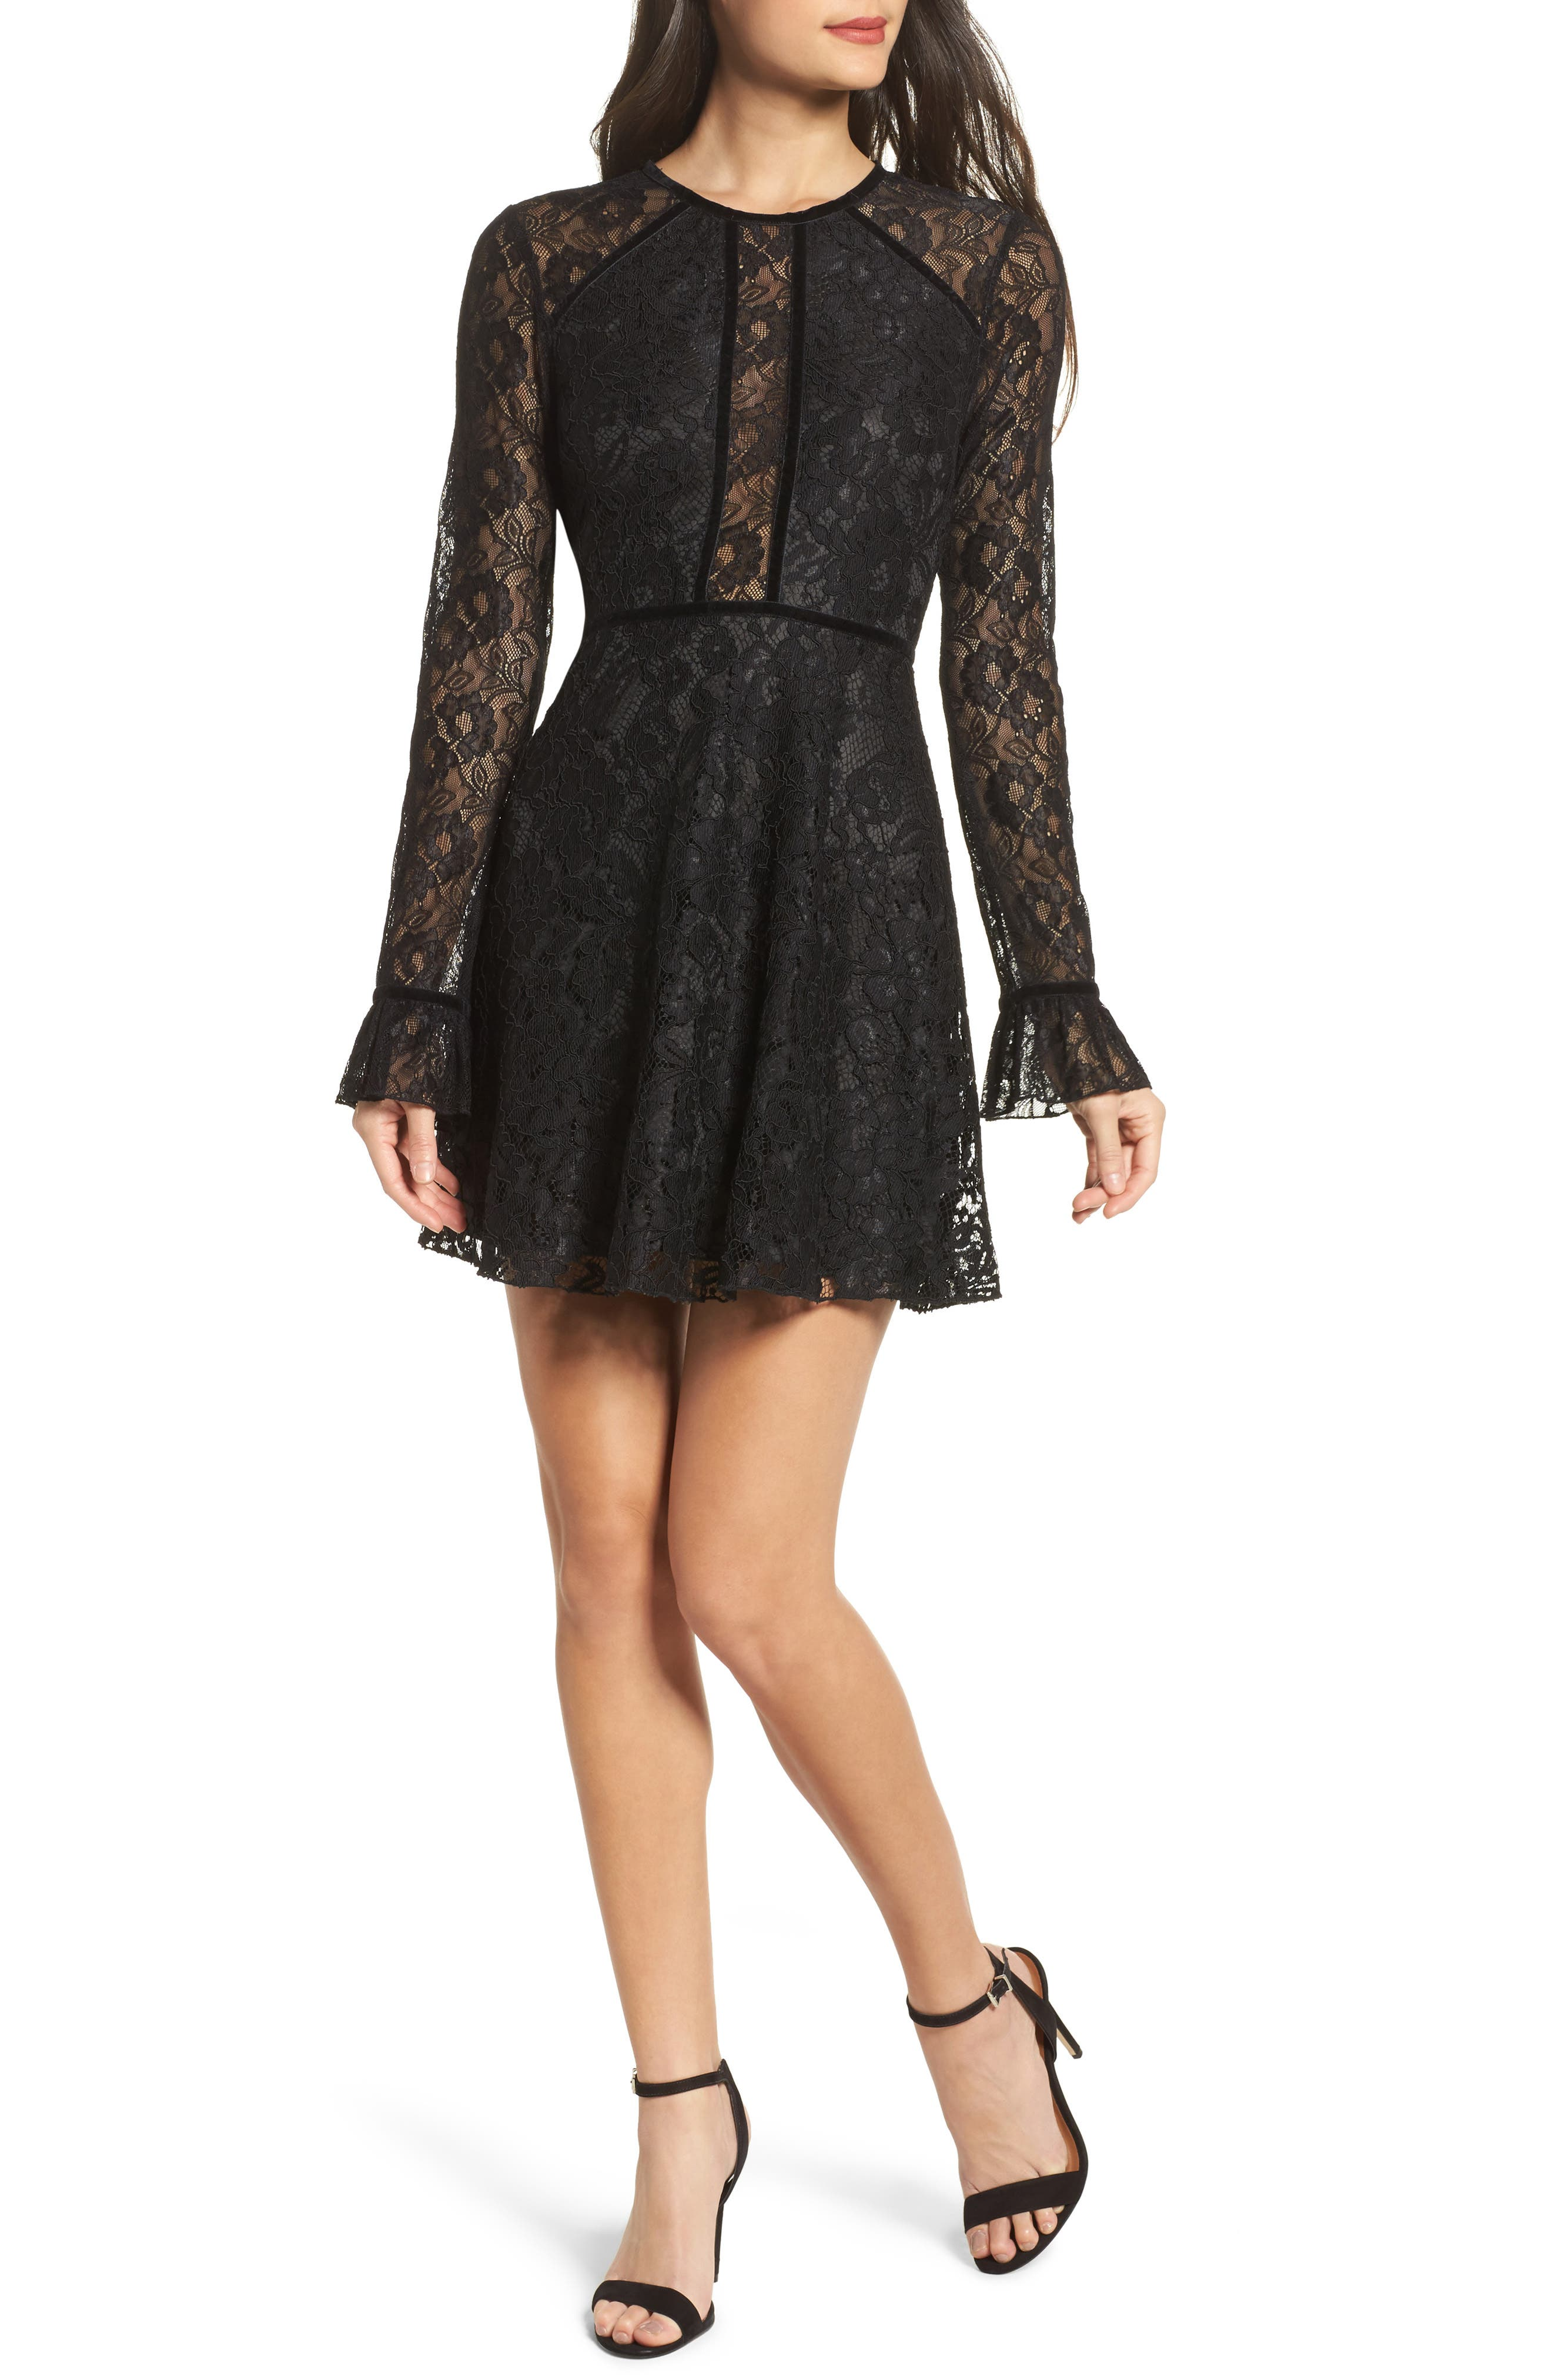 NSR Chantilly Lace Skater Dress